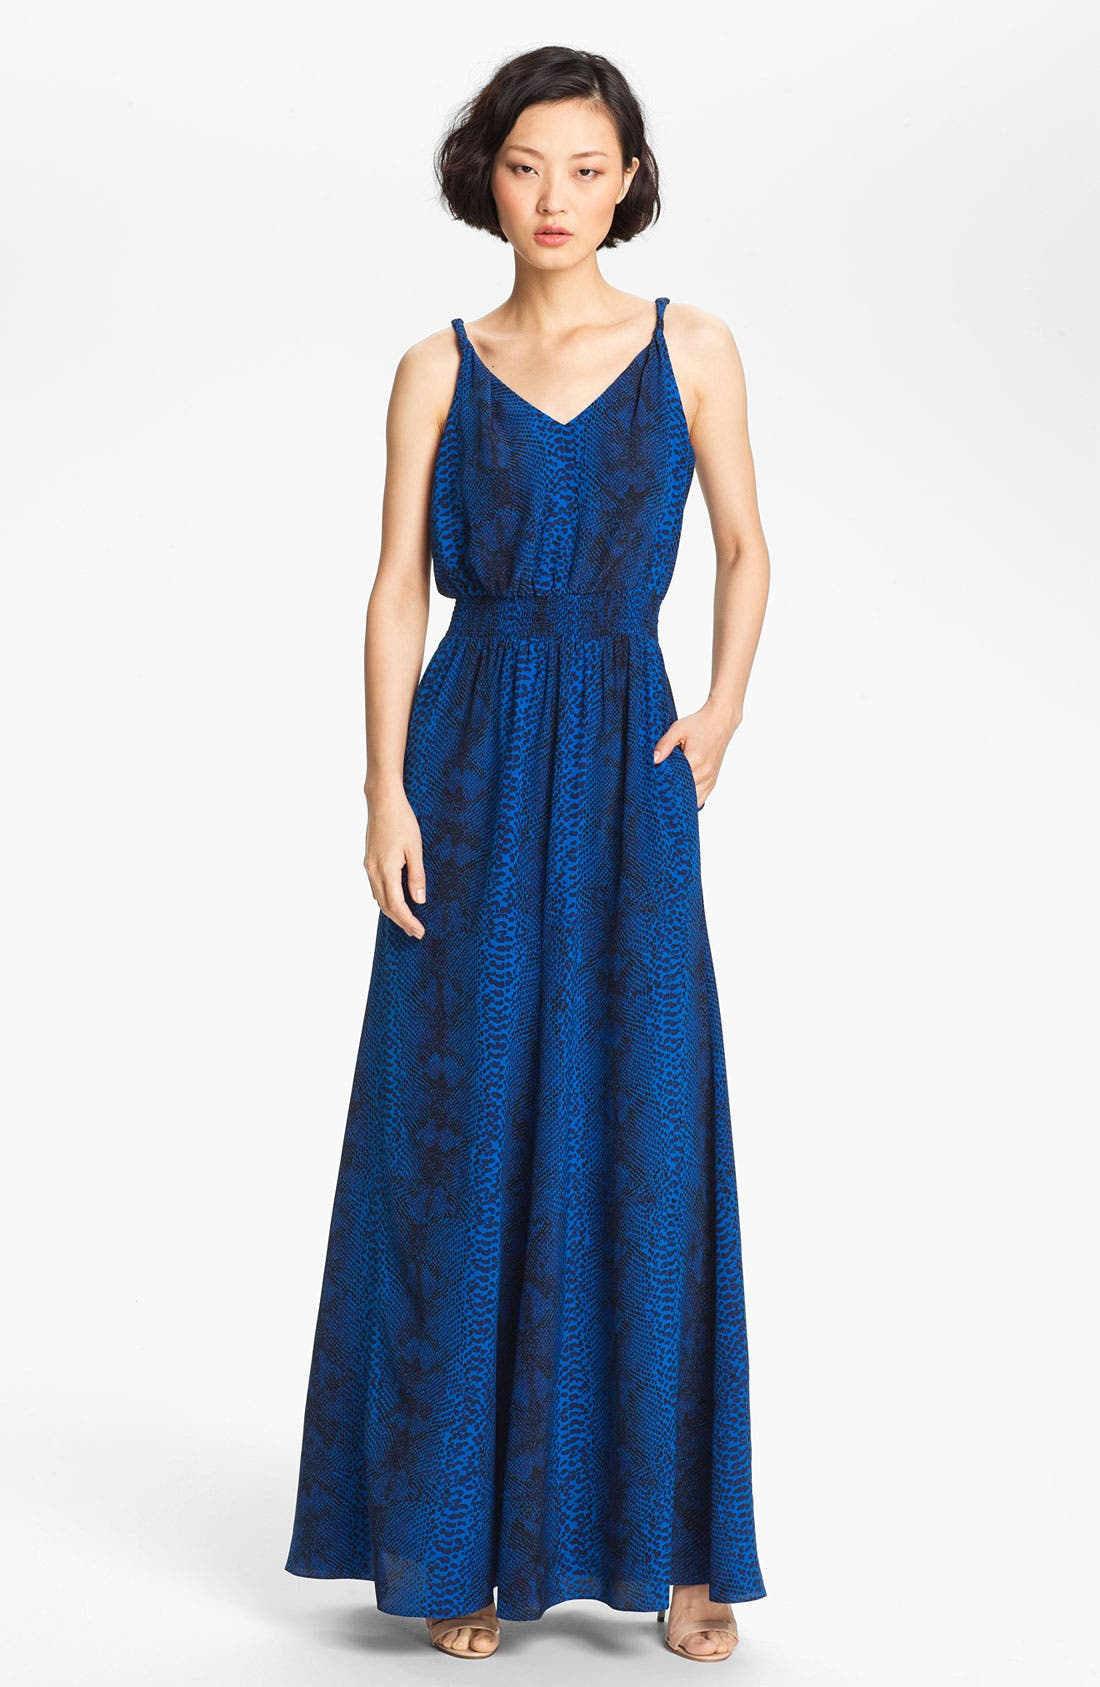 Alternate Image 1 Selected - Jay Godfrey 'Powell' Twisted Strap Silk Maxi Dress (Nordstrom Exclusive)